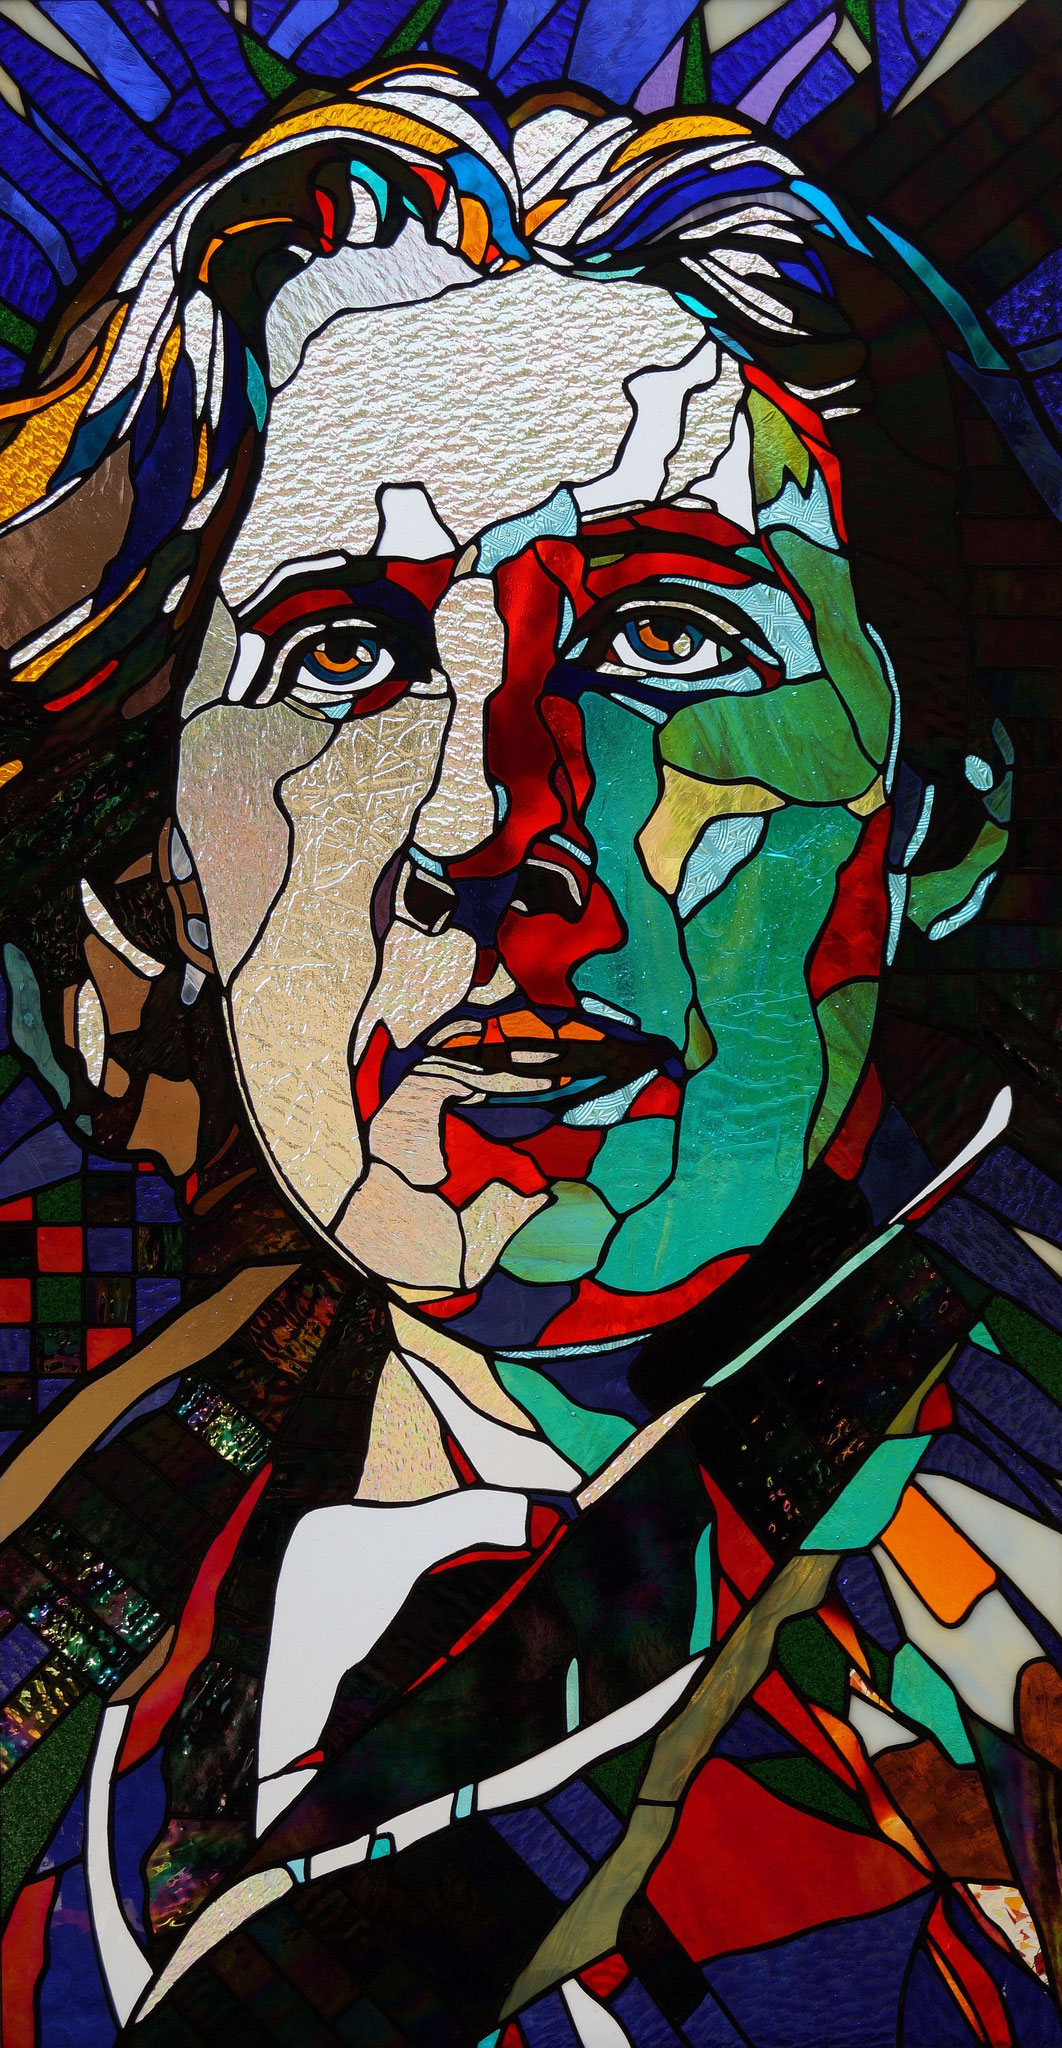 OSCAR WILDE  21 x 42 inches stained glass, photo by Frank Racicot